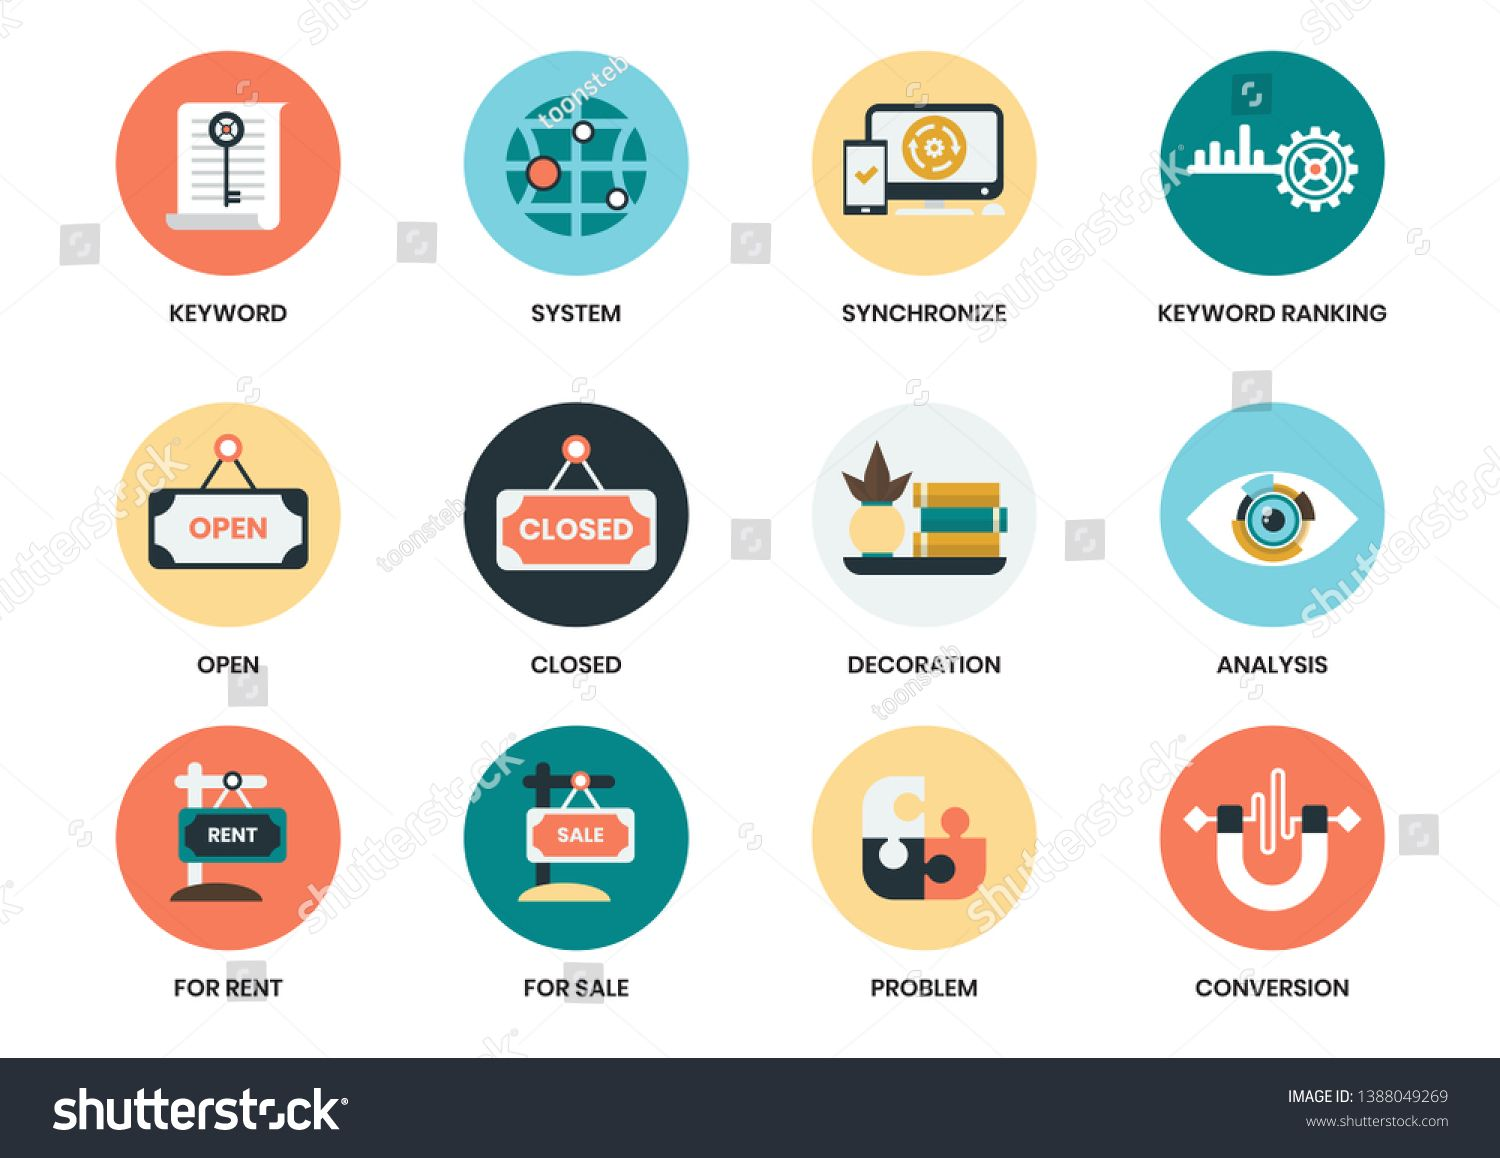 Business Icons Set For Business Marketing Management Sponsored